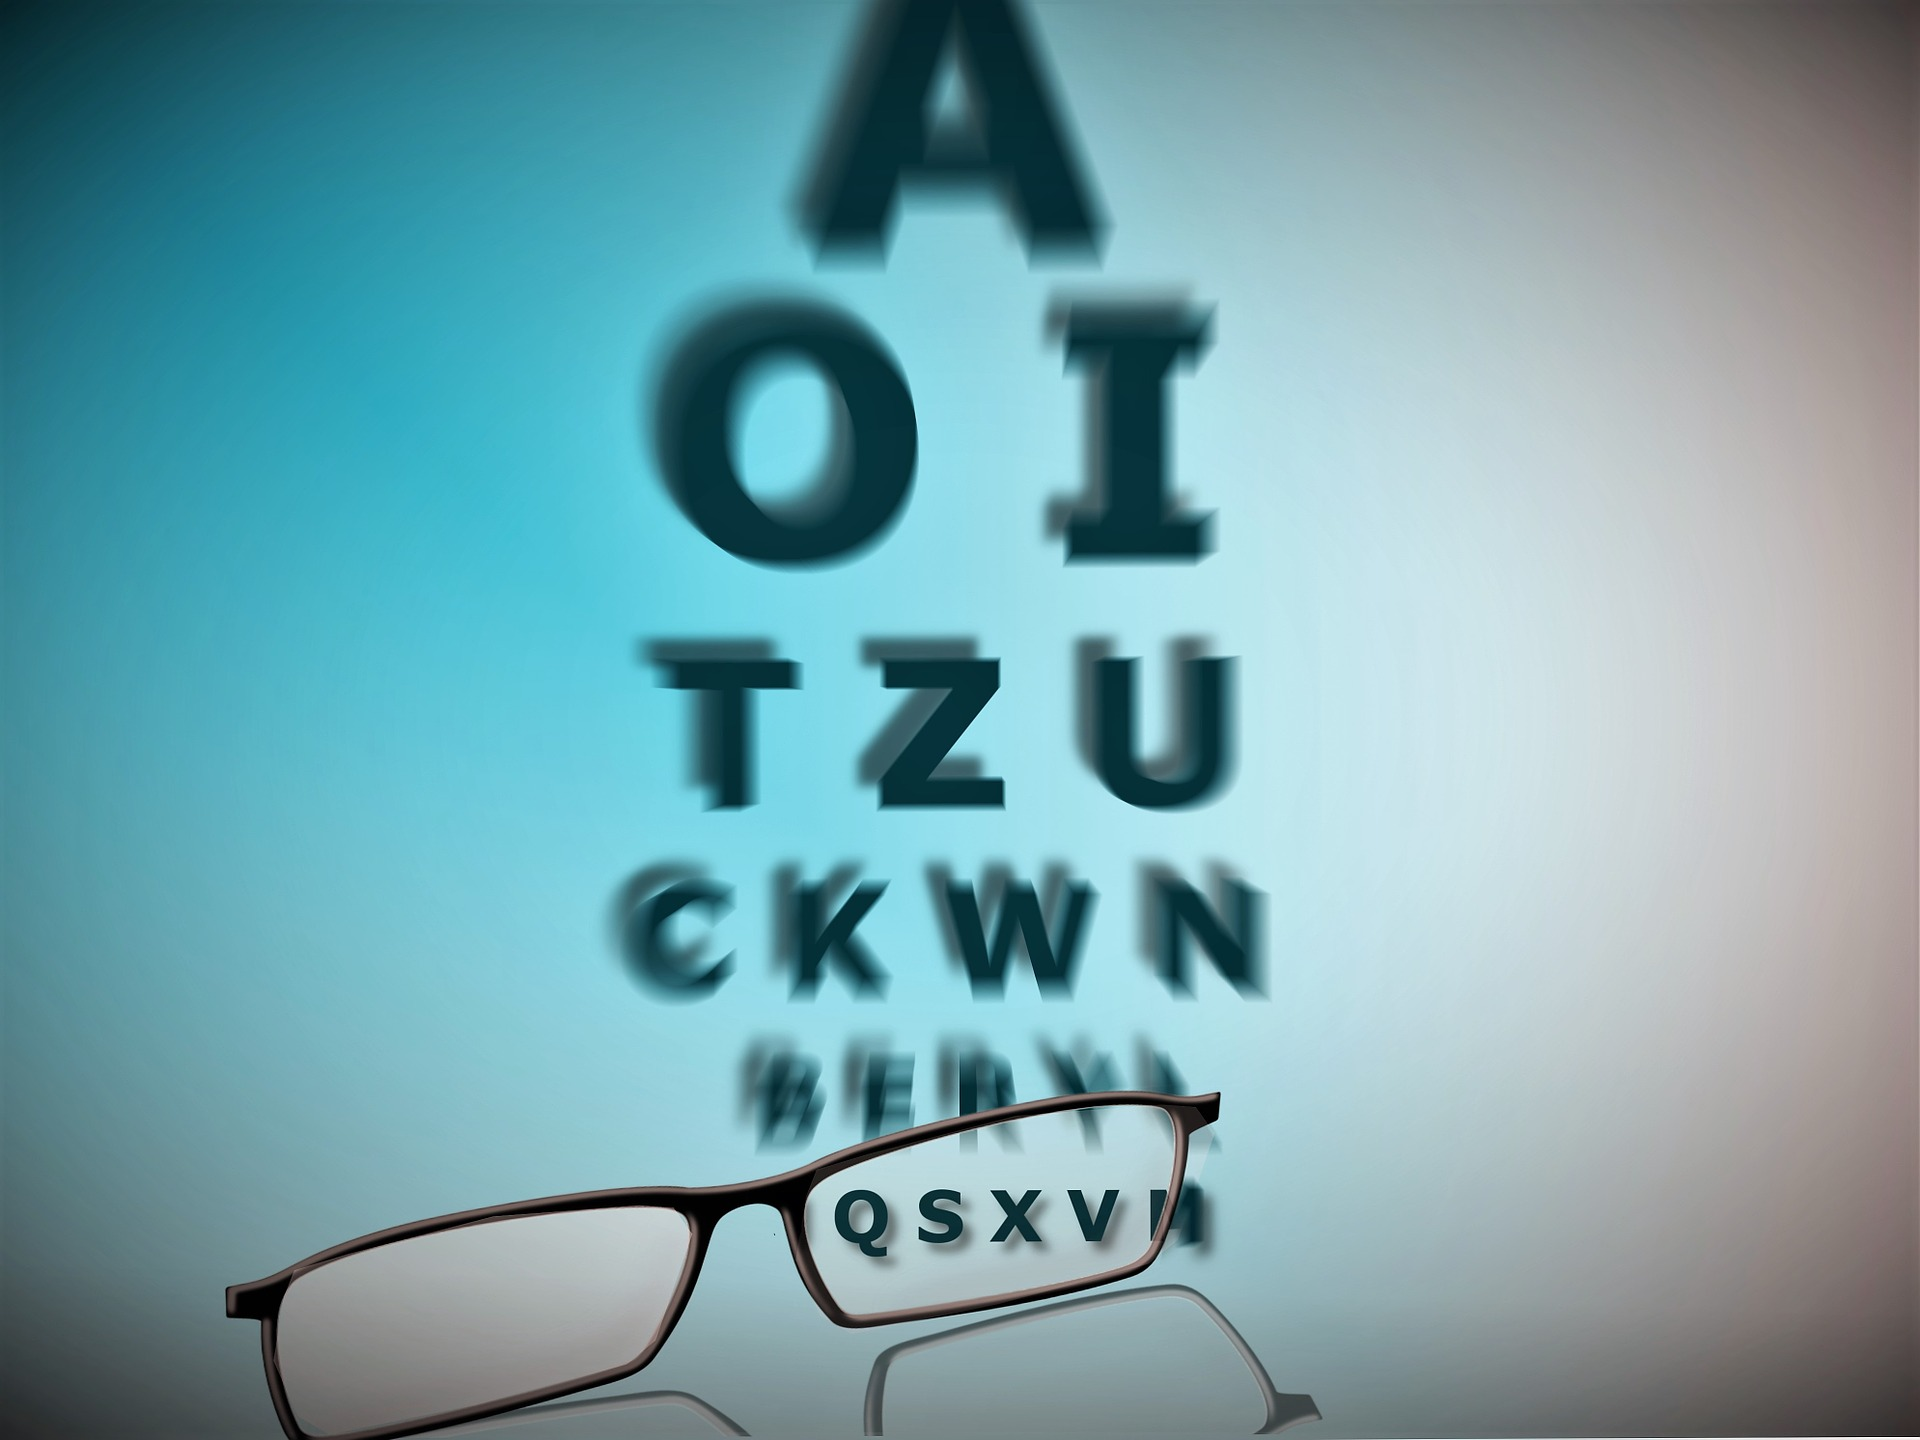 Can The Police Test My Eyesight?